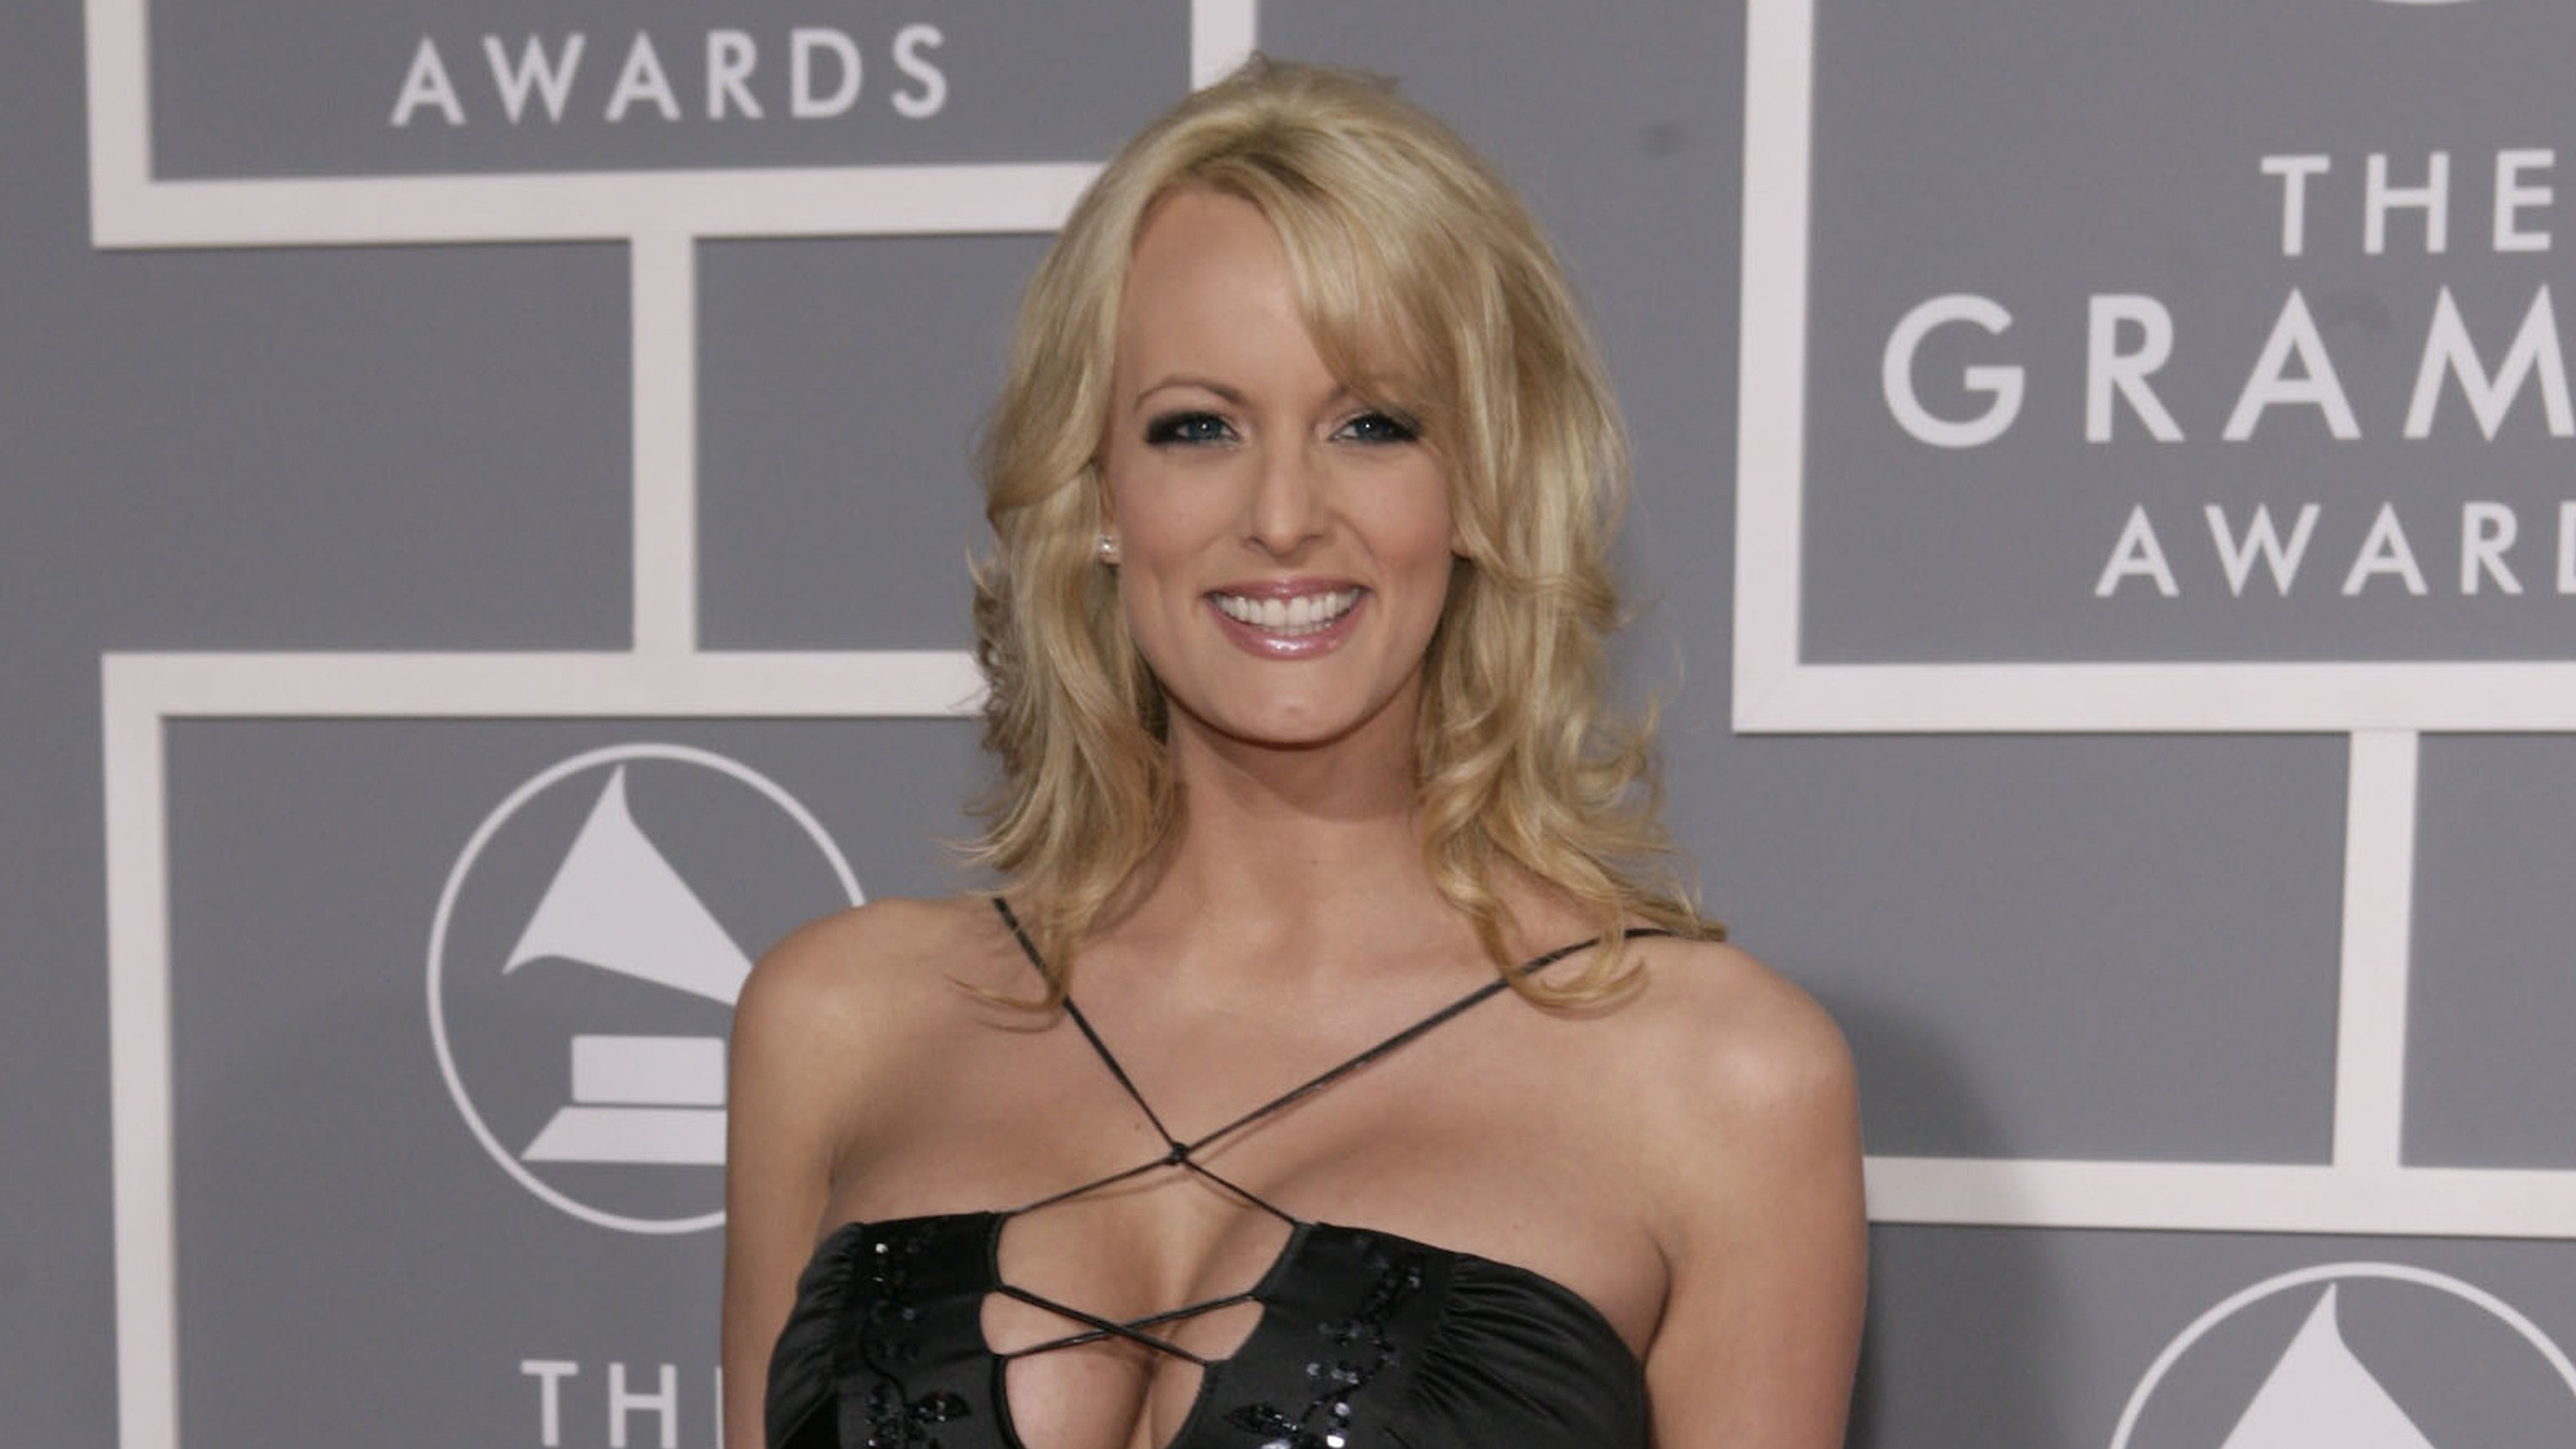 Trump tried to buy Stormy Daniels a condo - twice